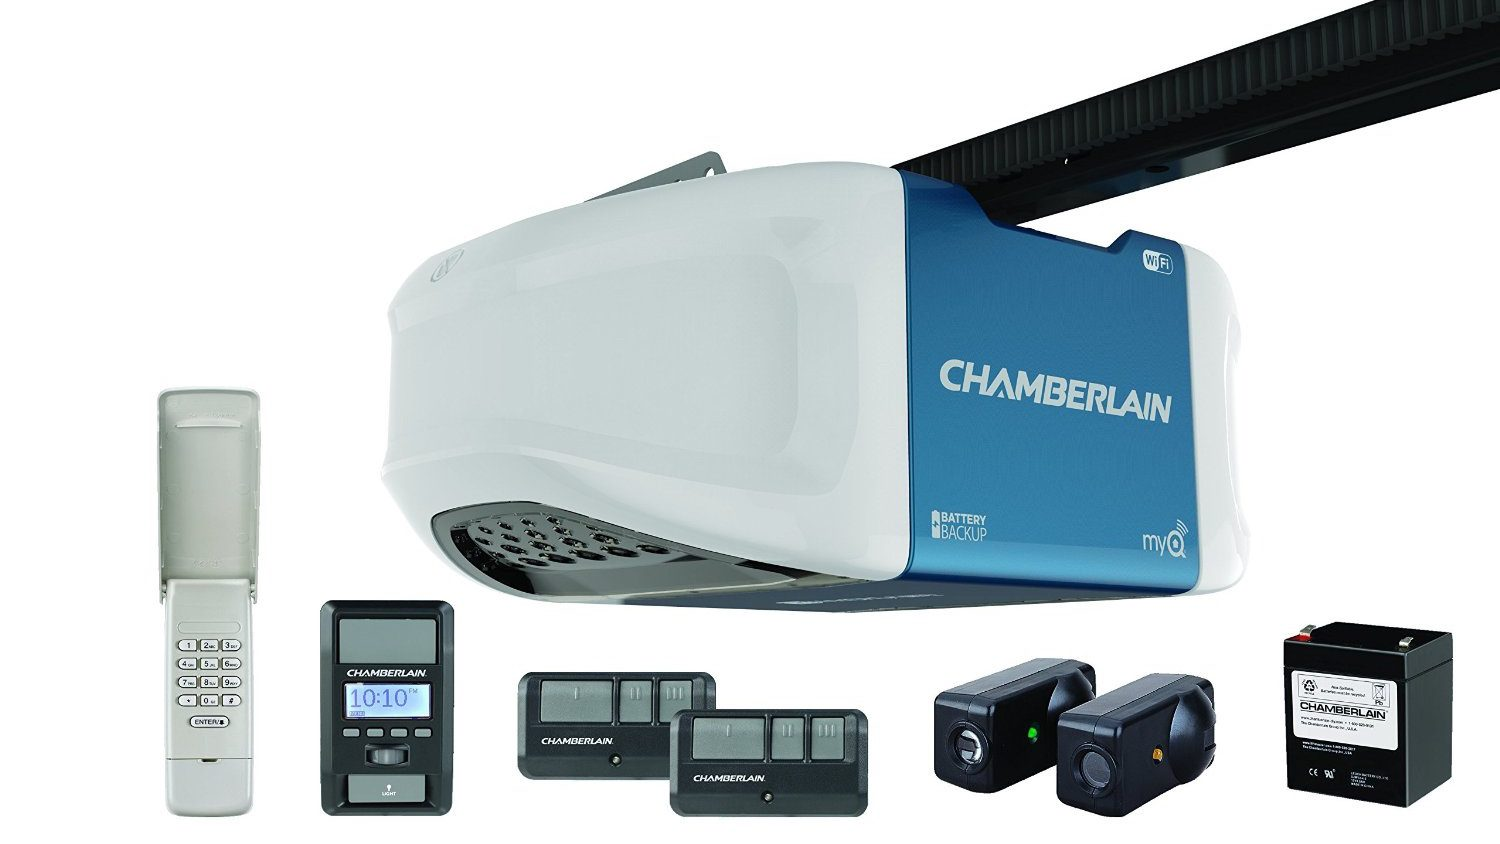 chamberlain-smart-garage-door-opener